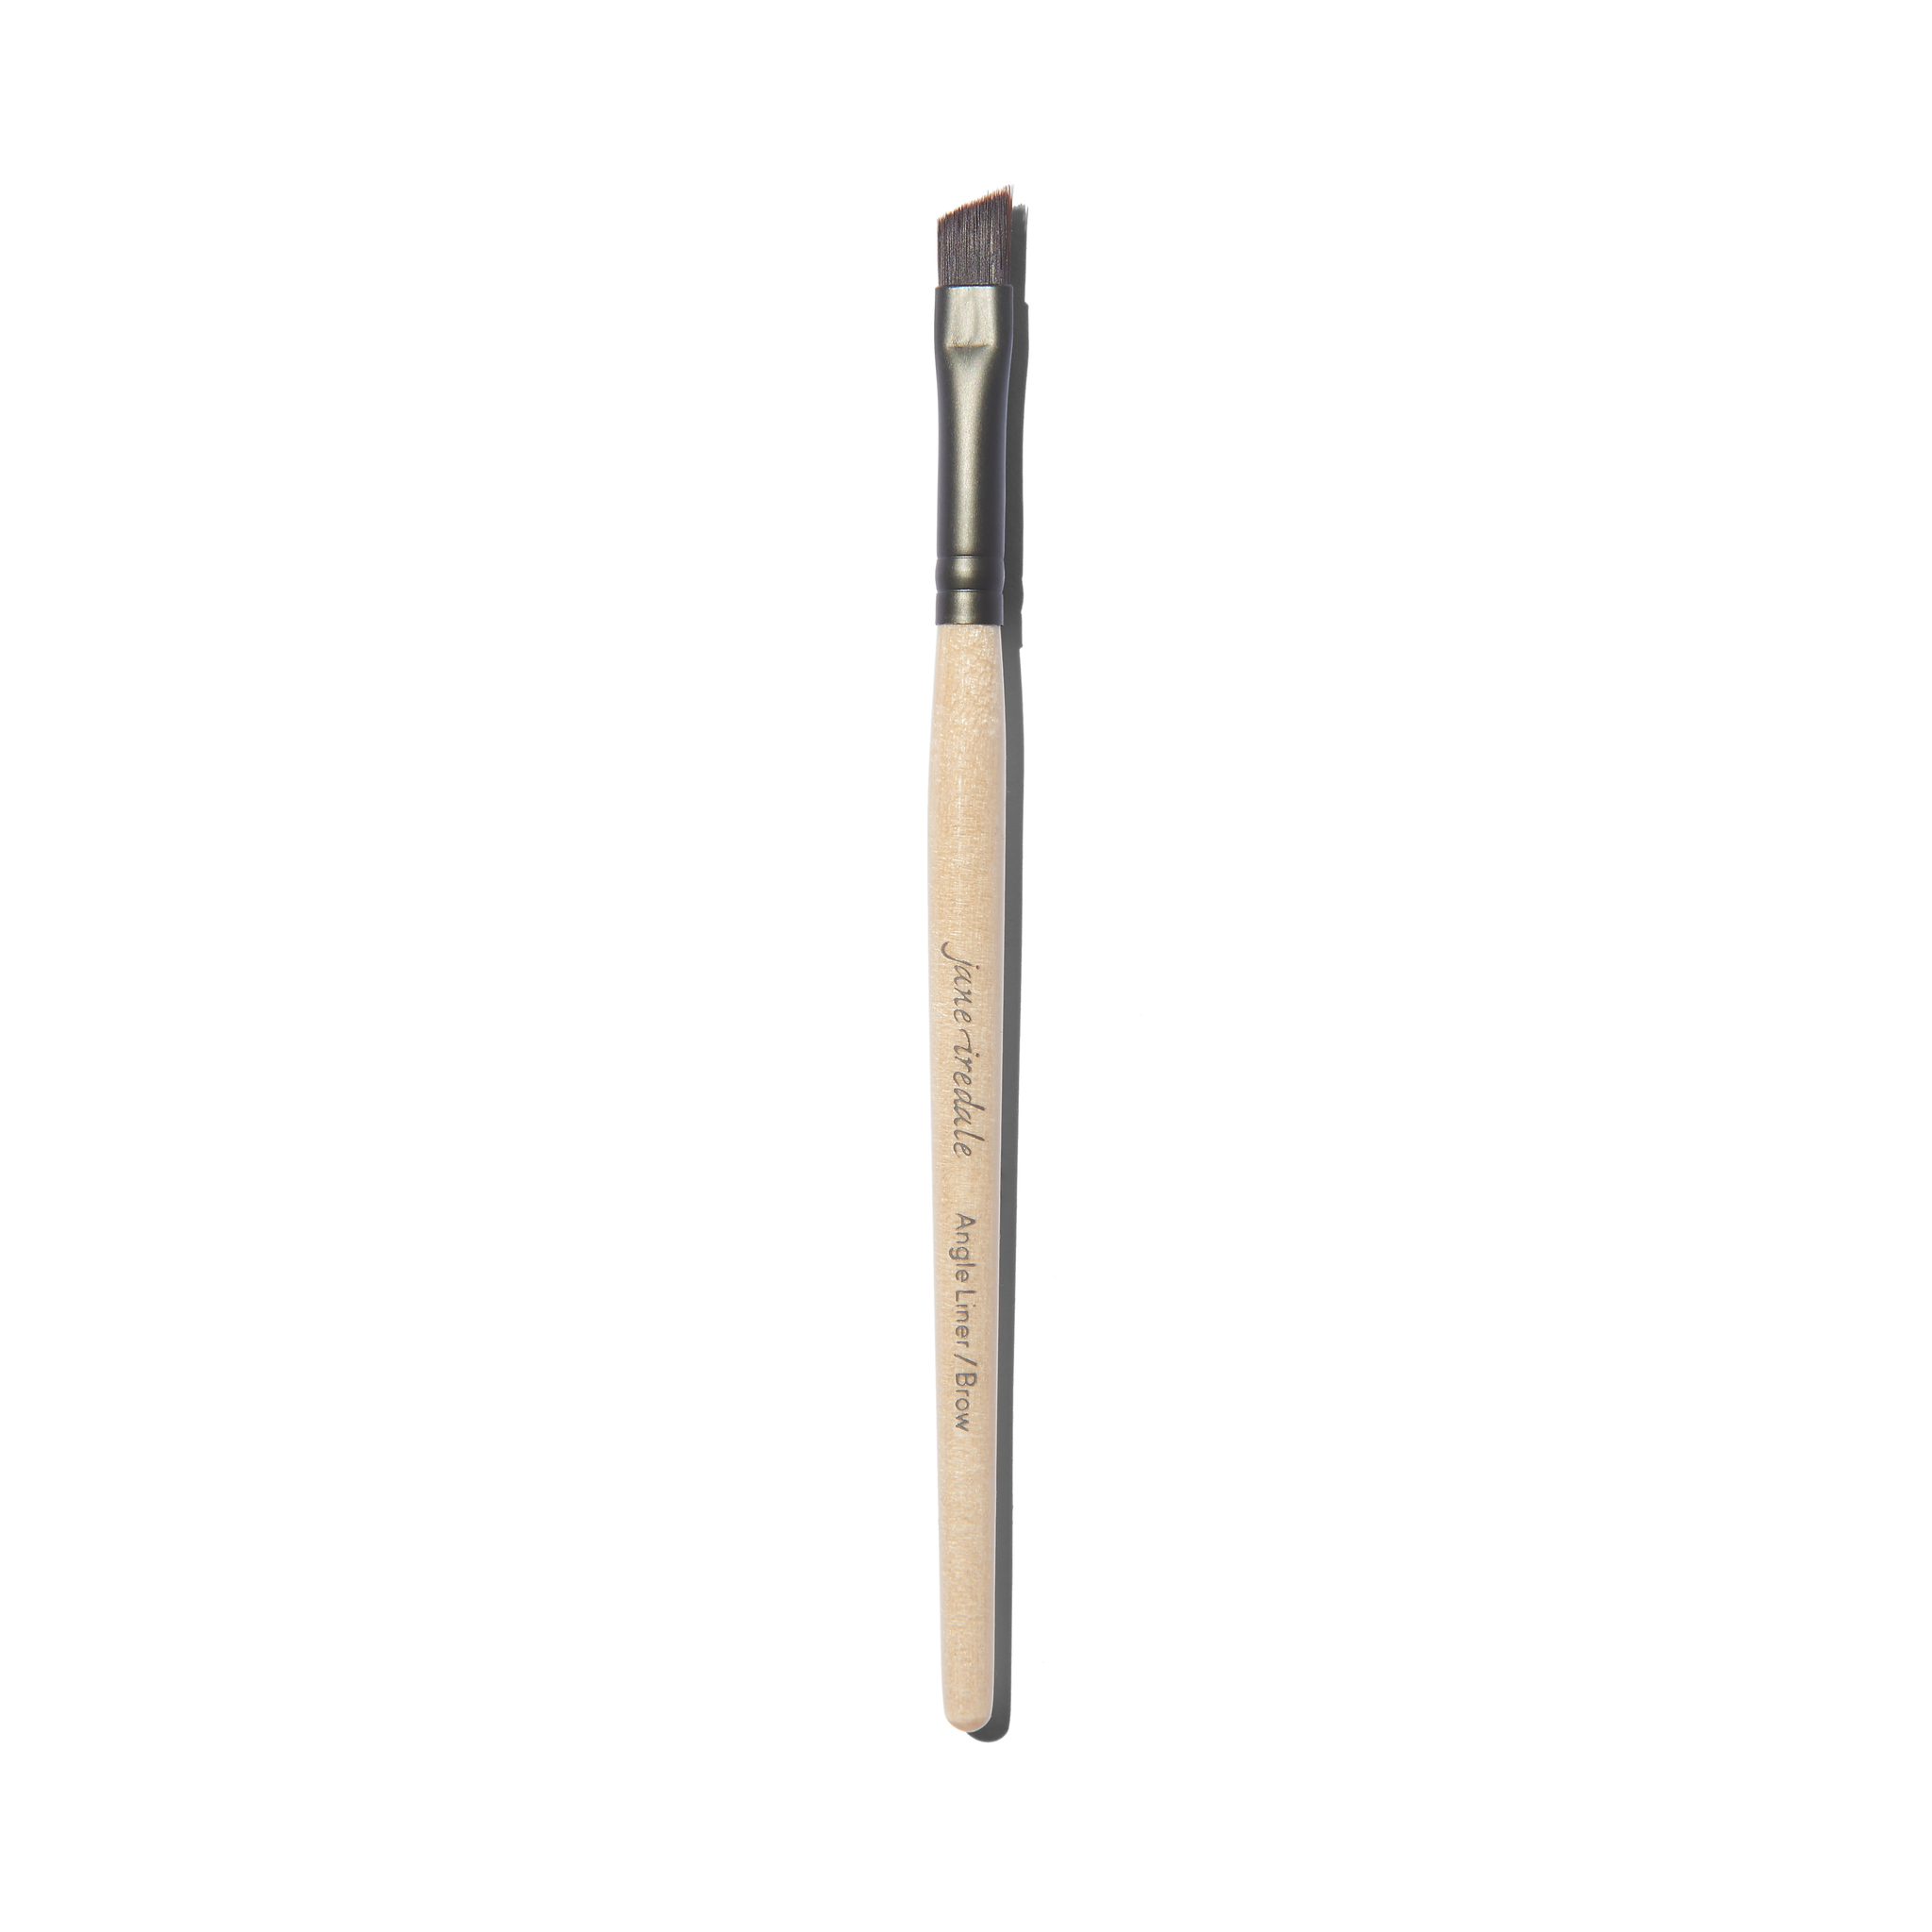 670959310125 - Jane Iredale Angle Liner and Brow Brush